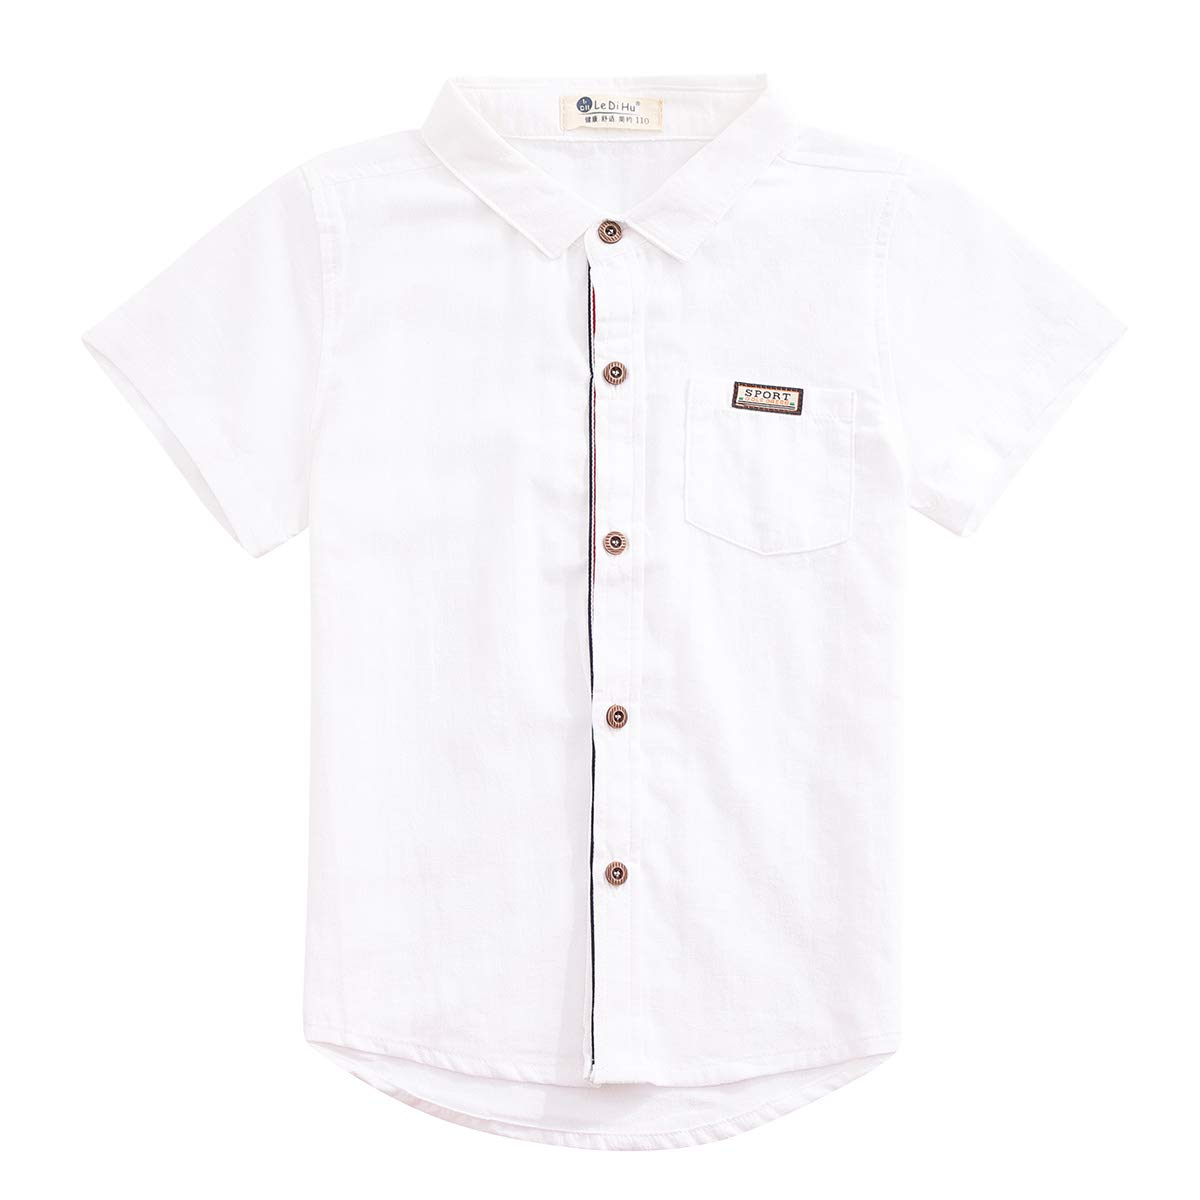 Ledihu Boys Spring and Summer Lapel Casual Short-Sleeved Shirt